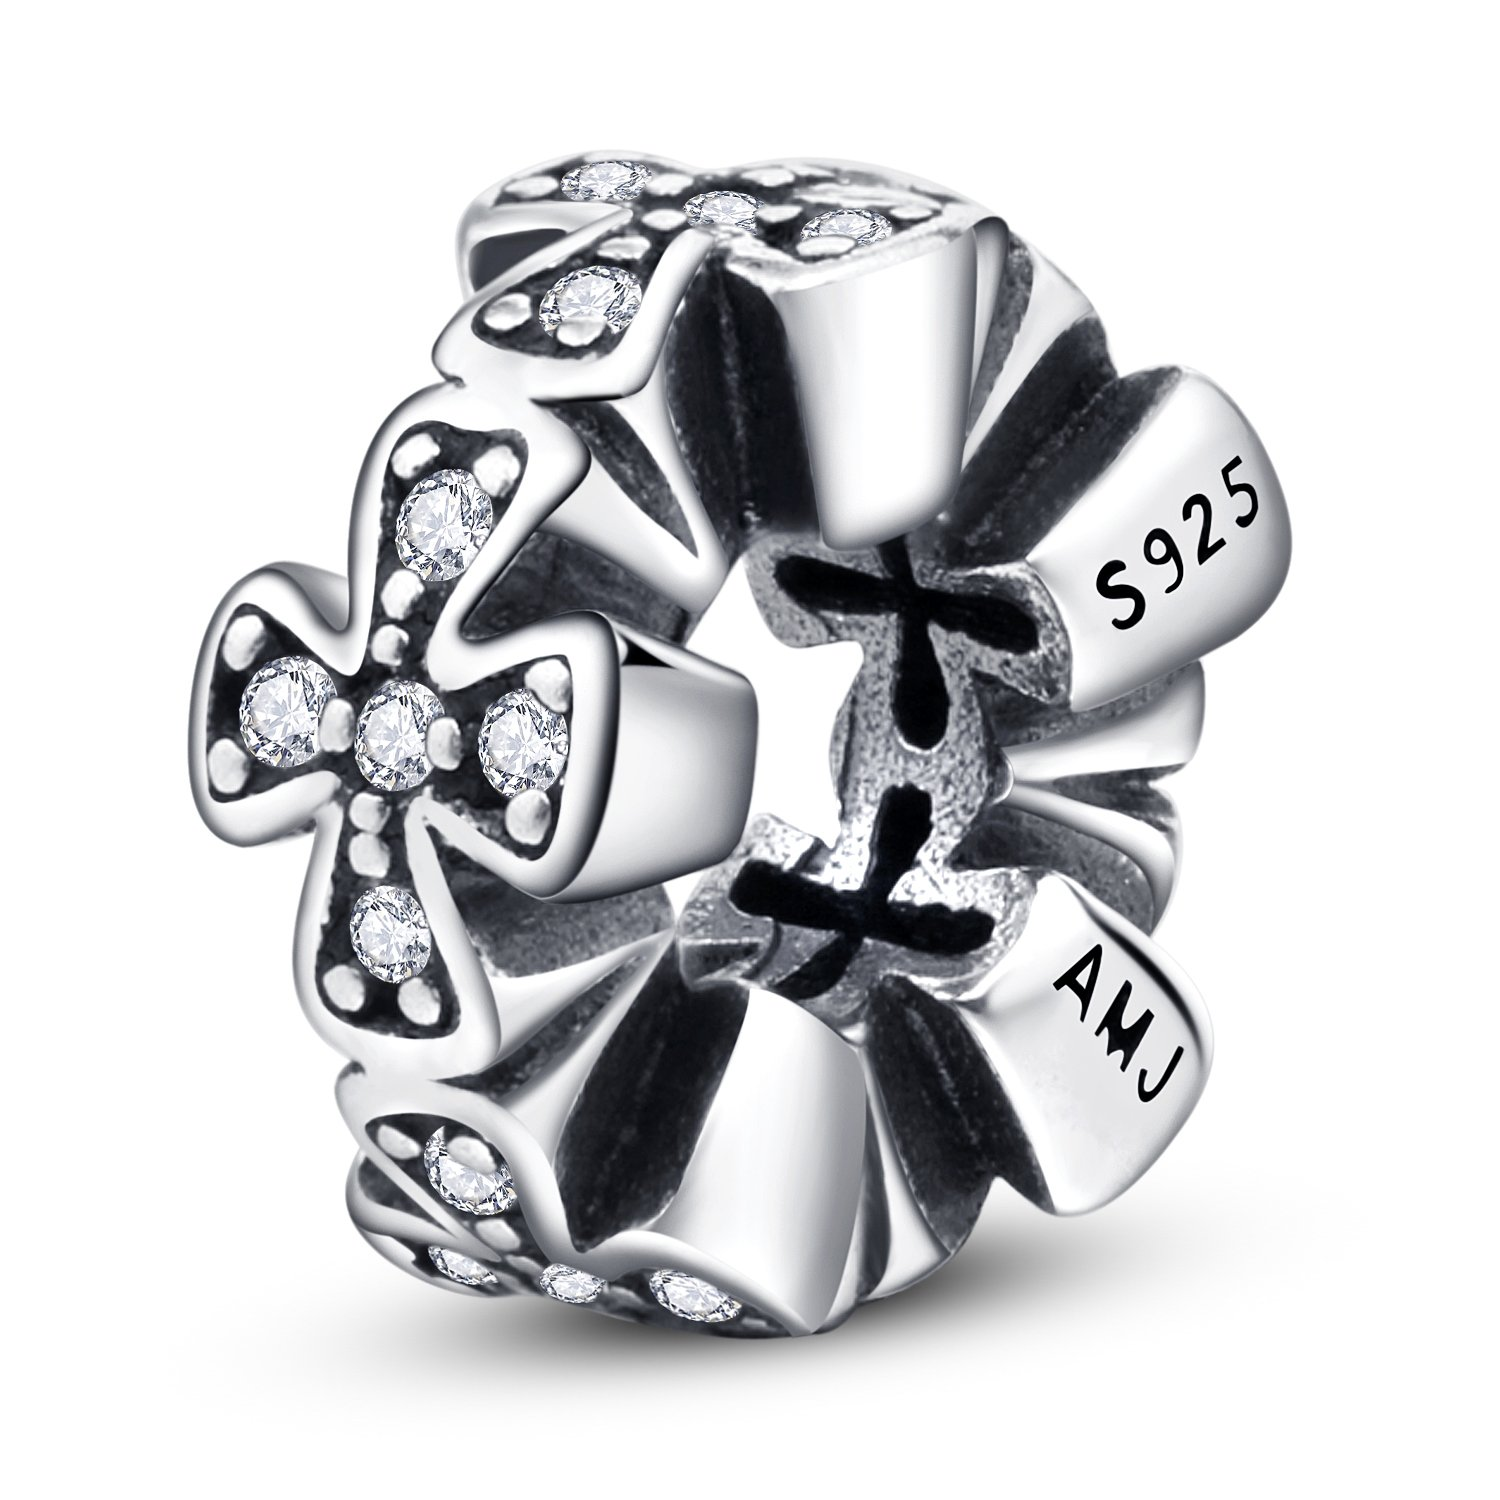 Cross Charms 925 Sterling Silver Spacers for Snake Bracelet Religion Jewelry with Clear CZ Mother's Day Gifts